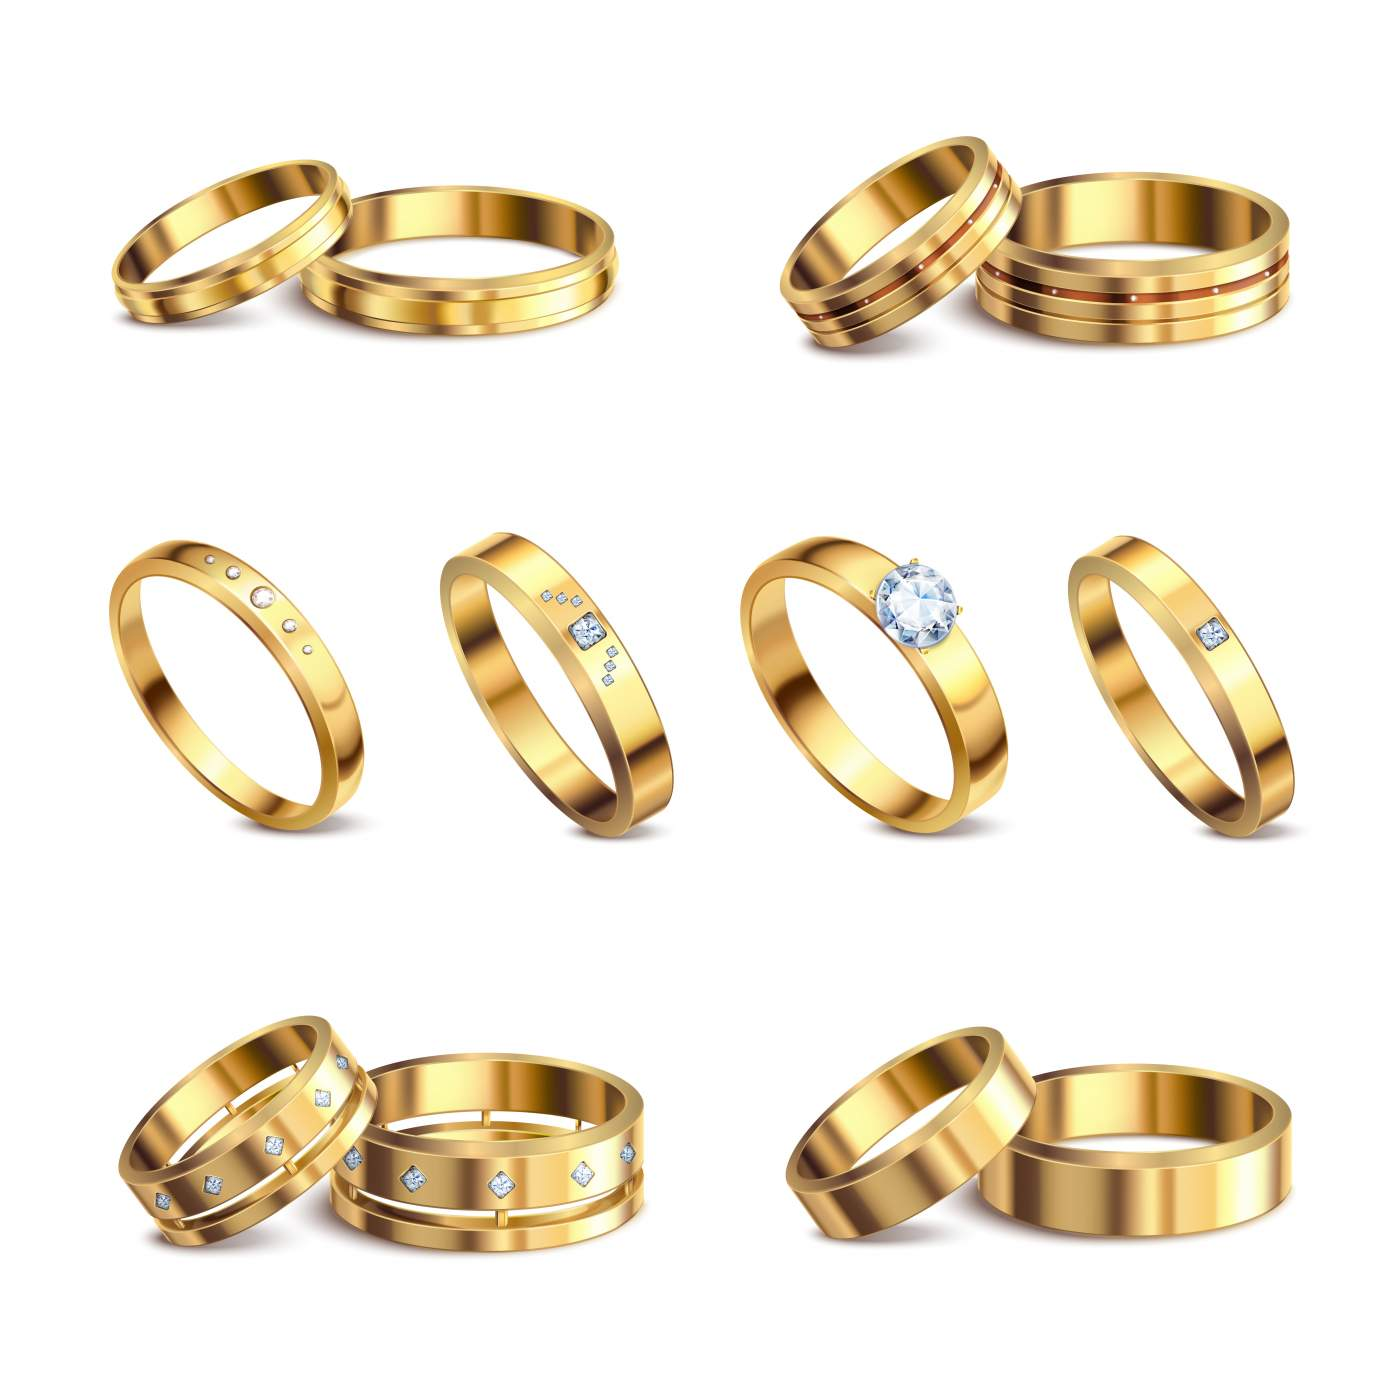 Gold wedding rings 6 realistic isolated sets